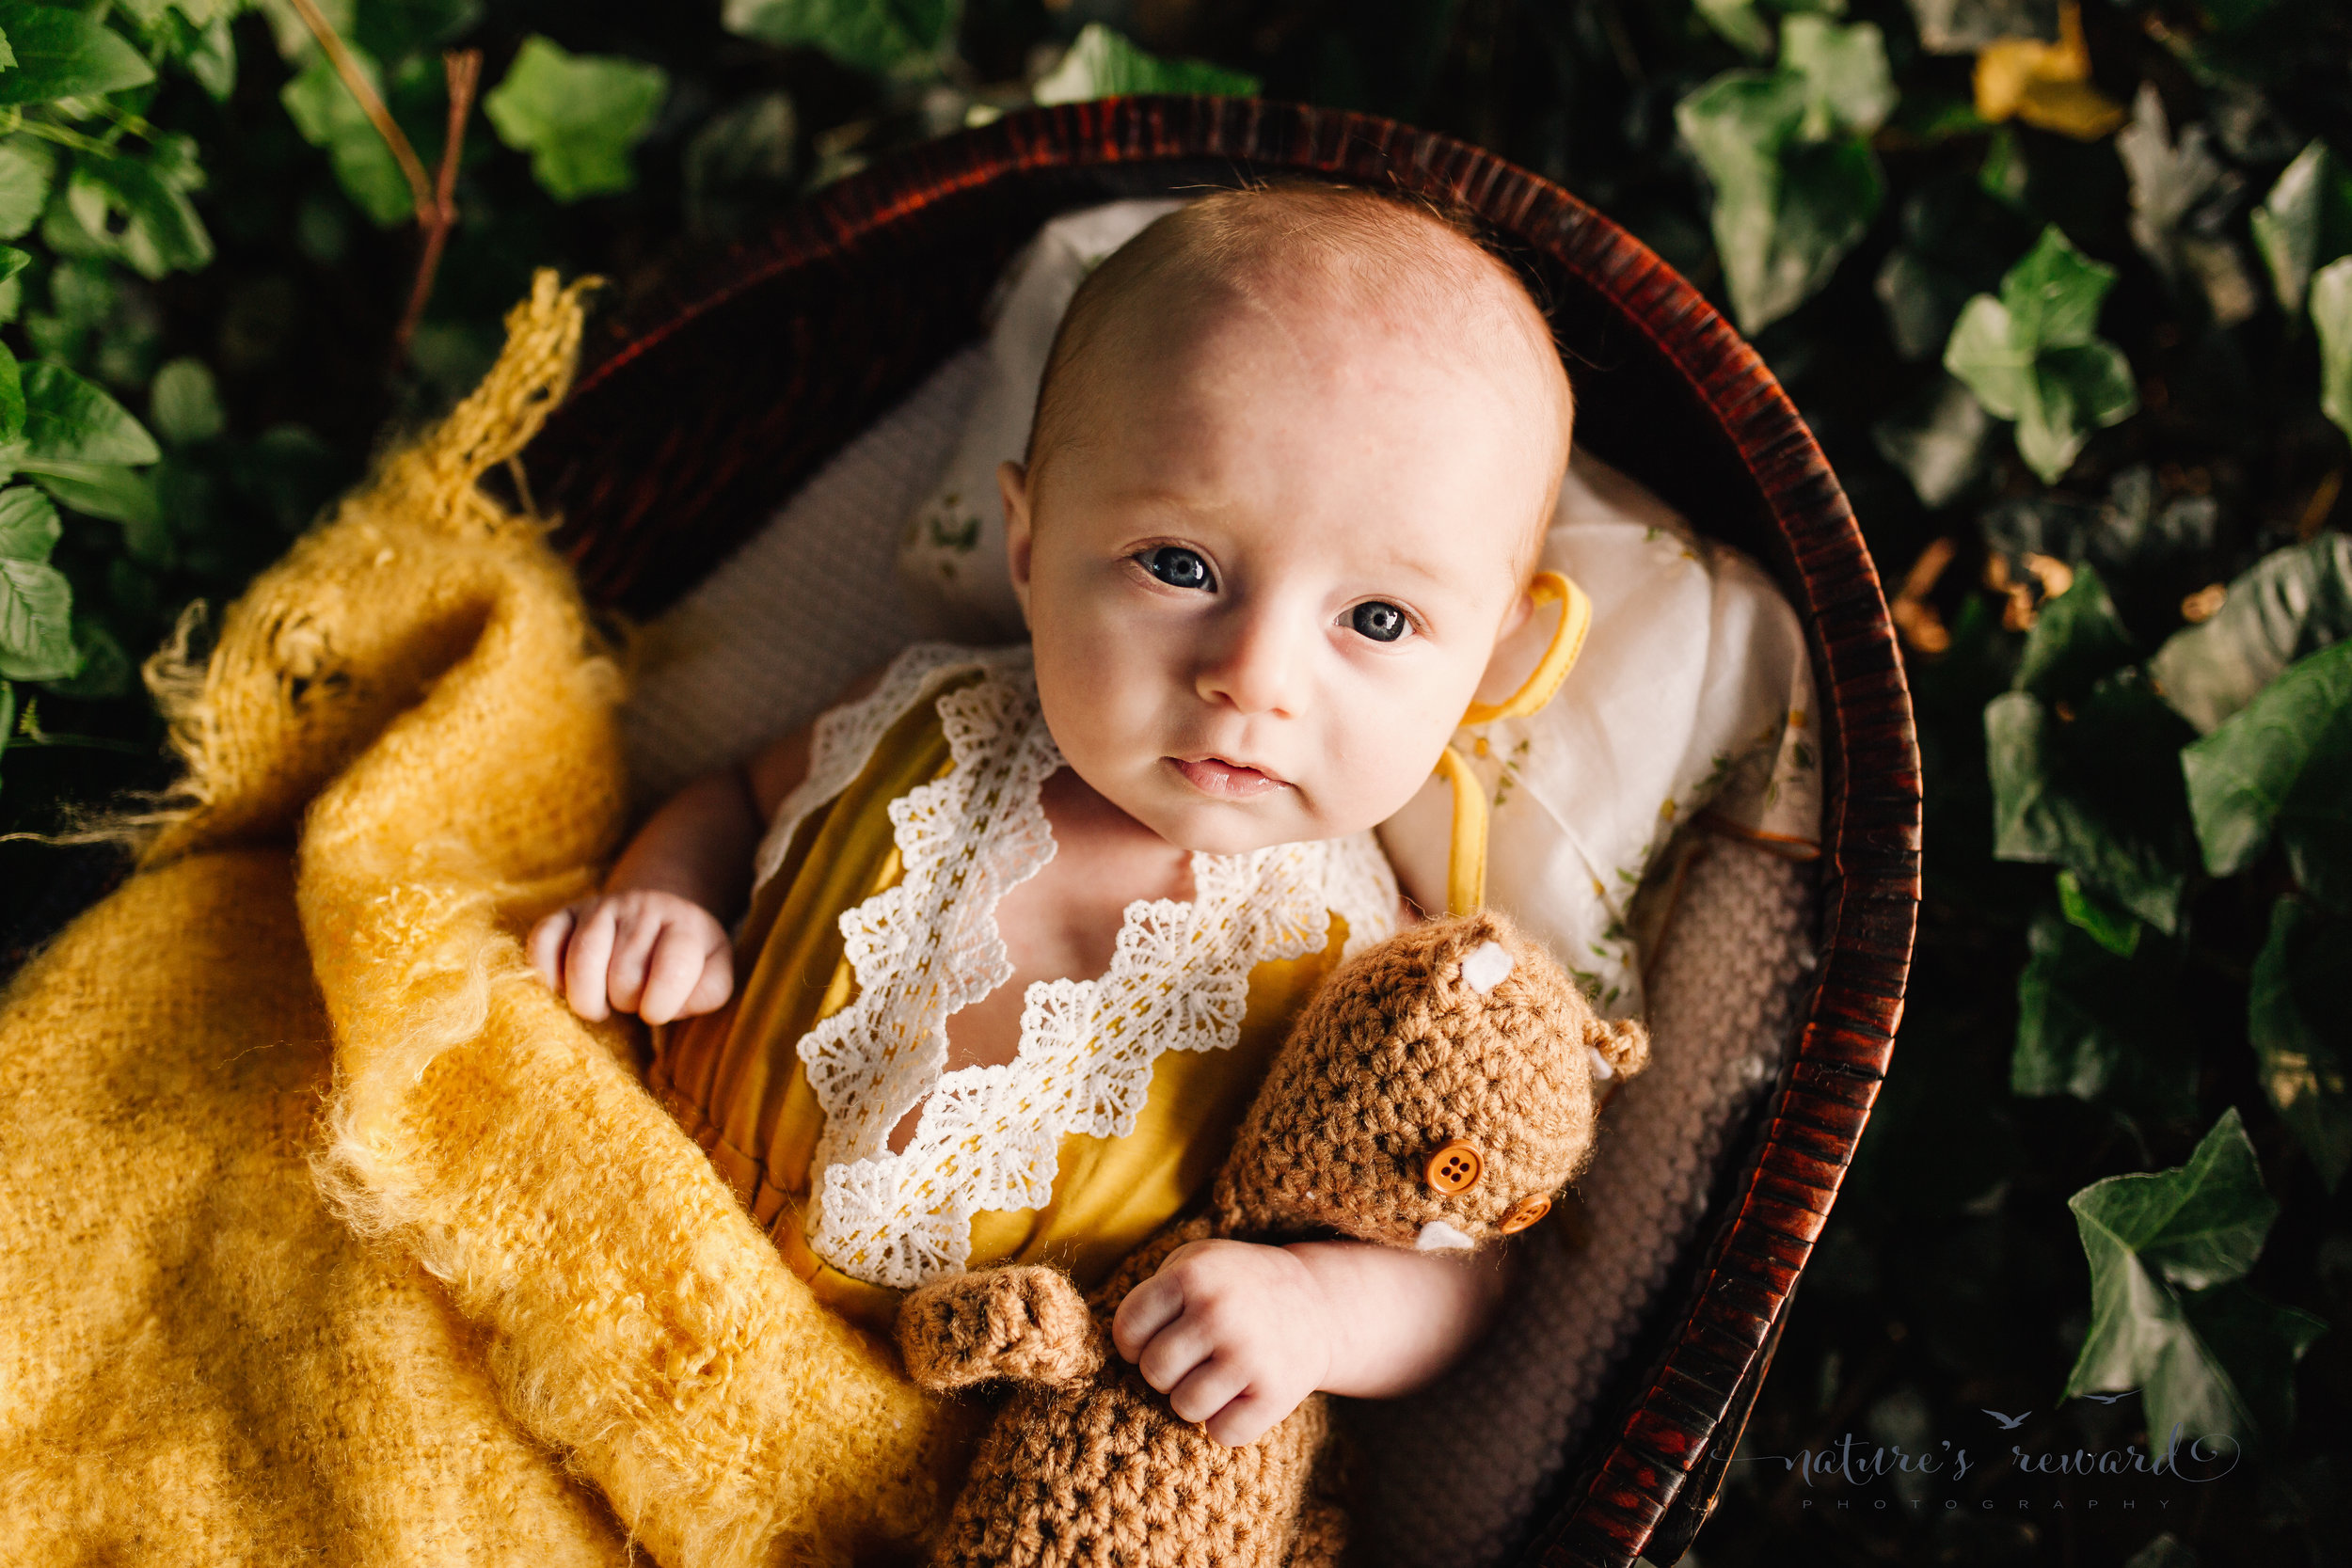 Three (3) month old baby in a yellow romper lined with white lace in a basket with a soft yellow blanket while holding a brown teddy in a basket with a lace lined pillow in a bed of Ivey in sun set light by Nature's Reward Photography.